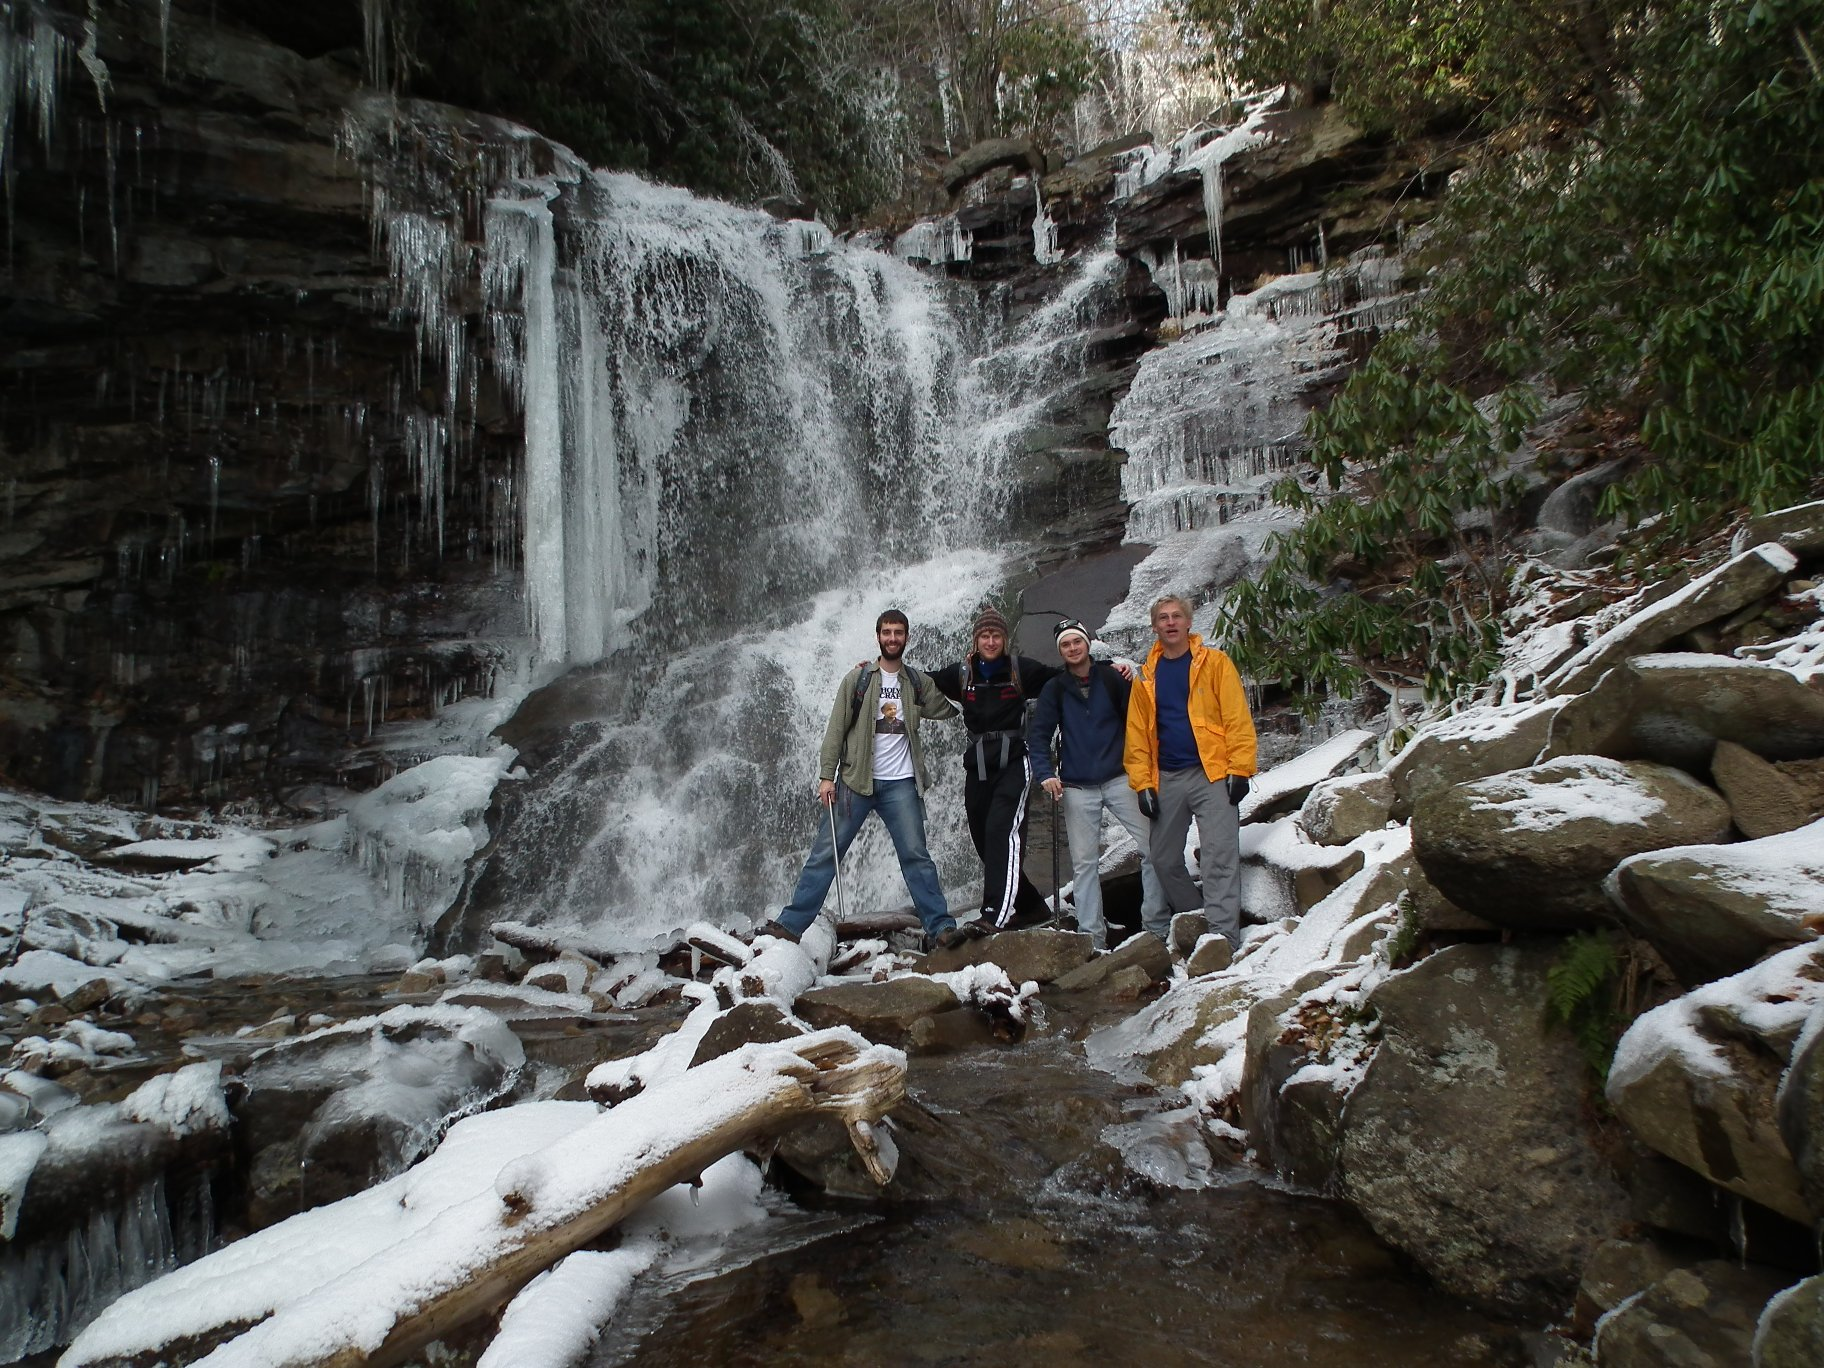 Outdoors Society December 2010 Glen Onoko